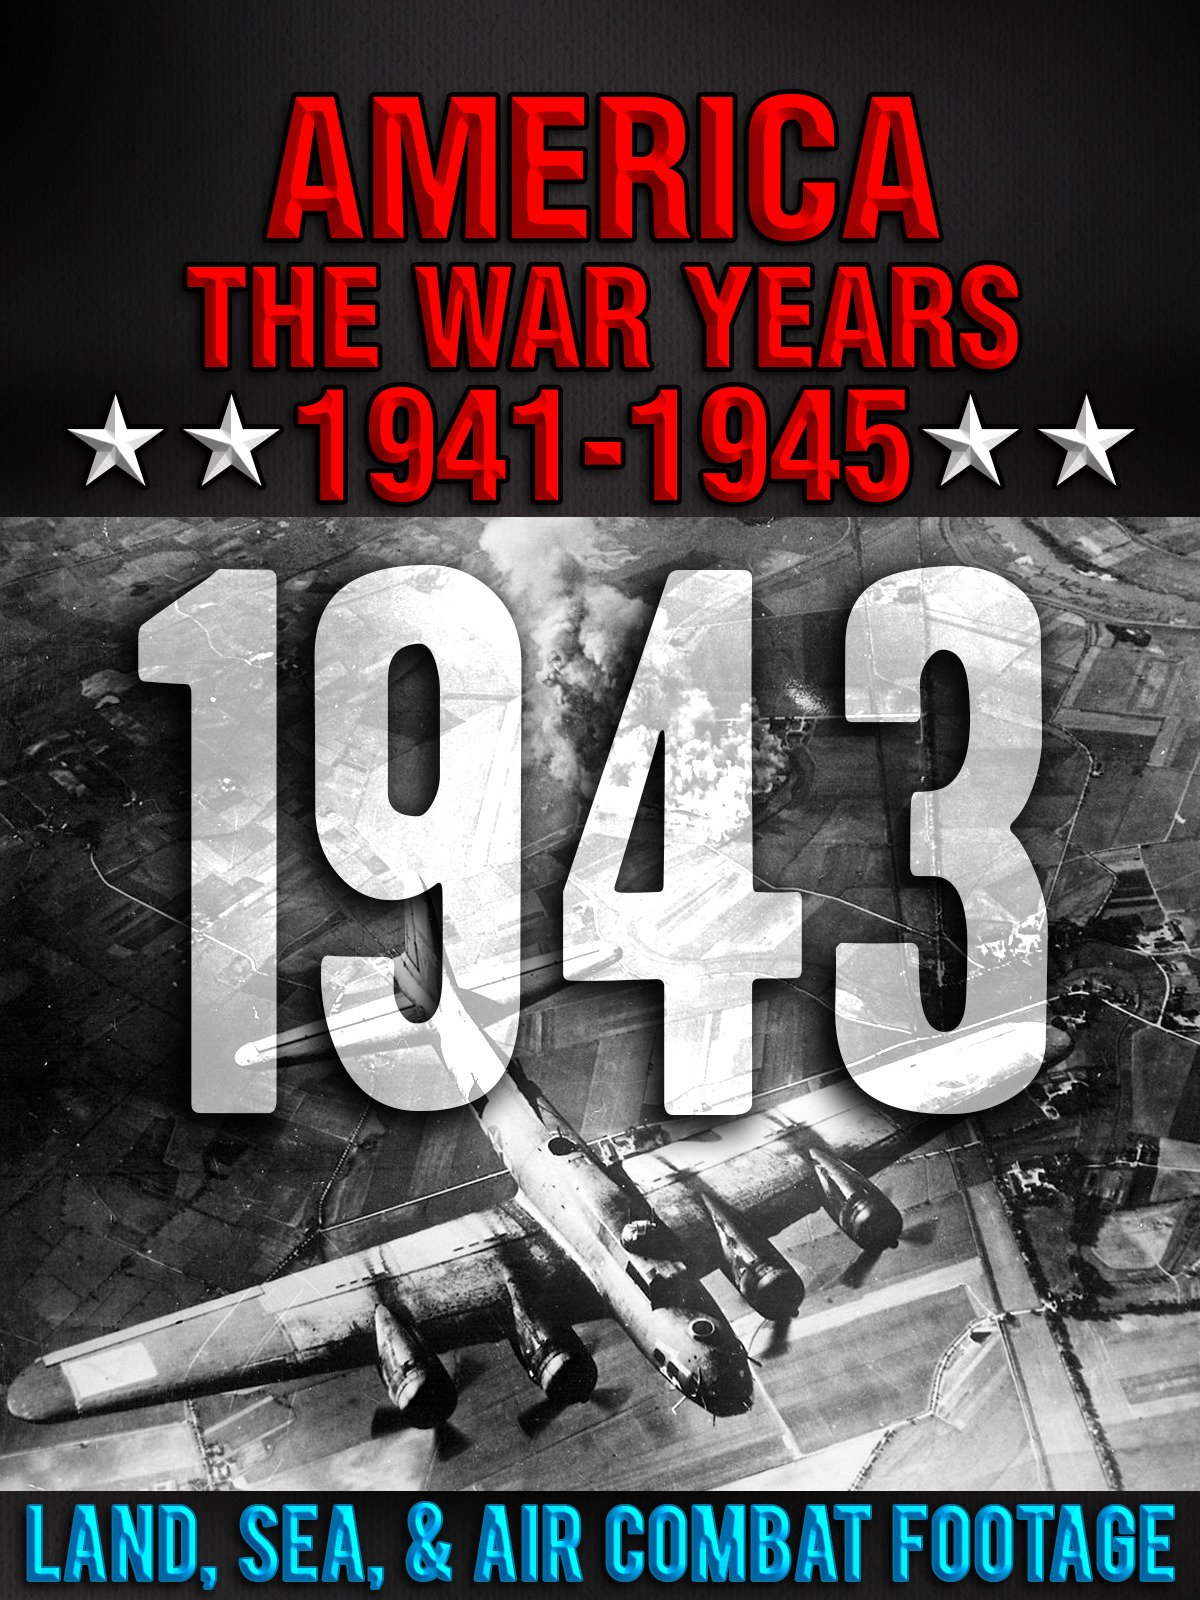 America The War Years 1941-1945: 1943 Land, Sea, Air Combat Footage